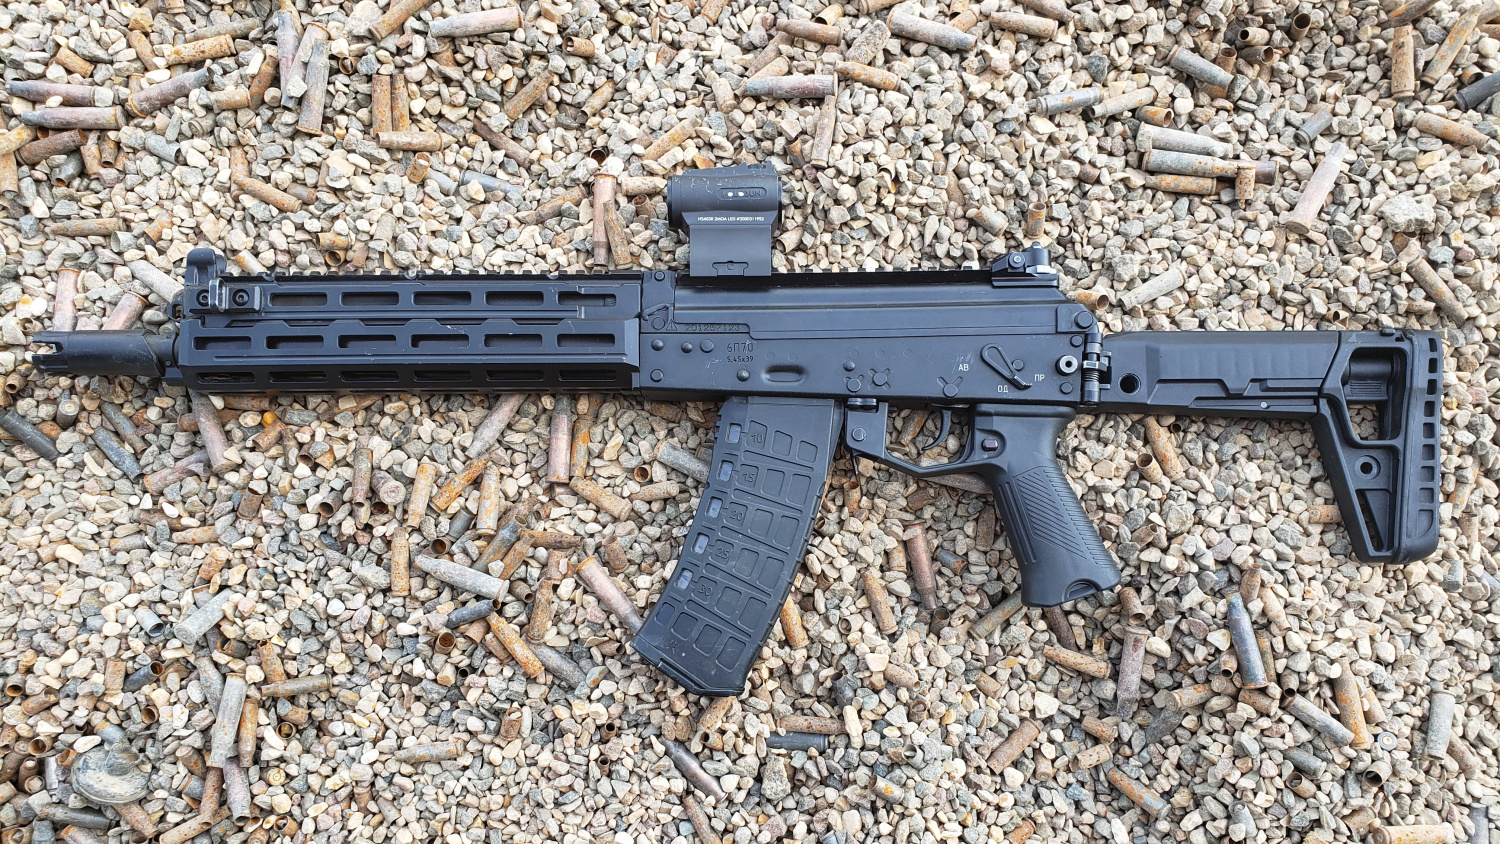 AK-12SP and AK-12SPK New Rifles For Russian Special Forces (2)